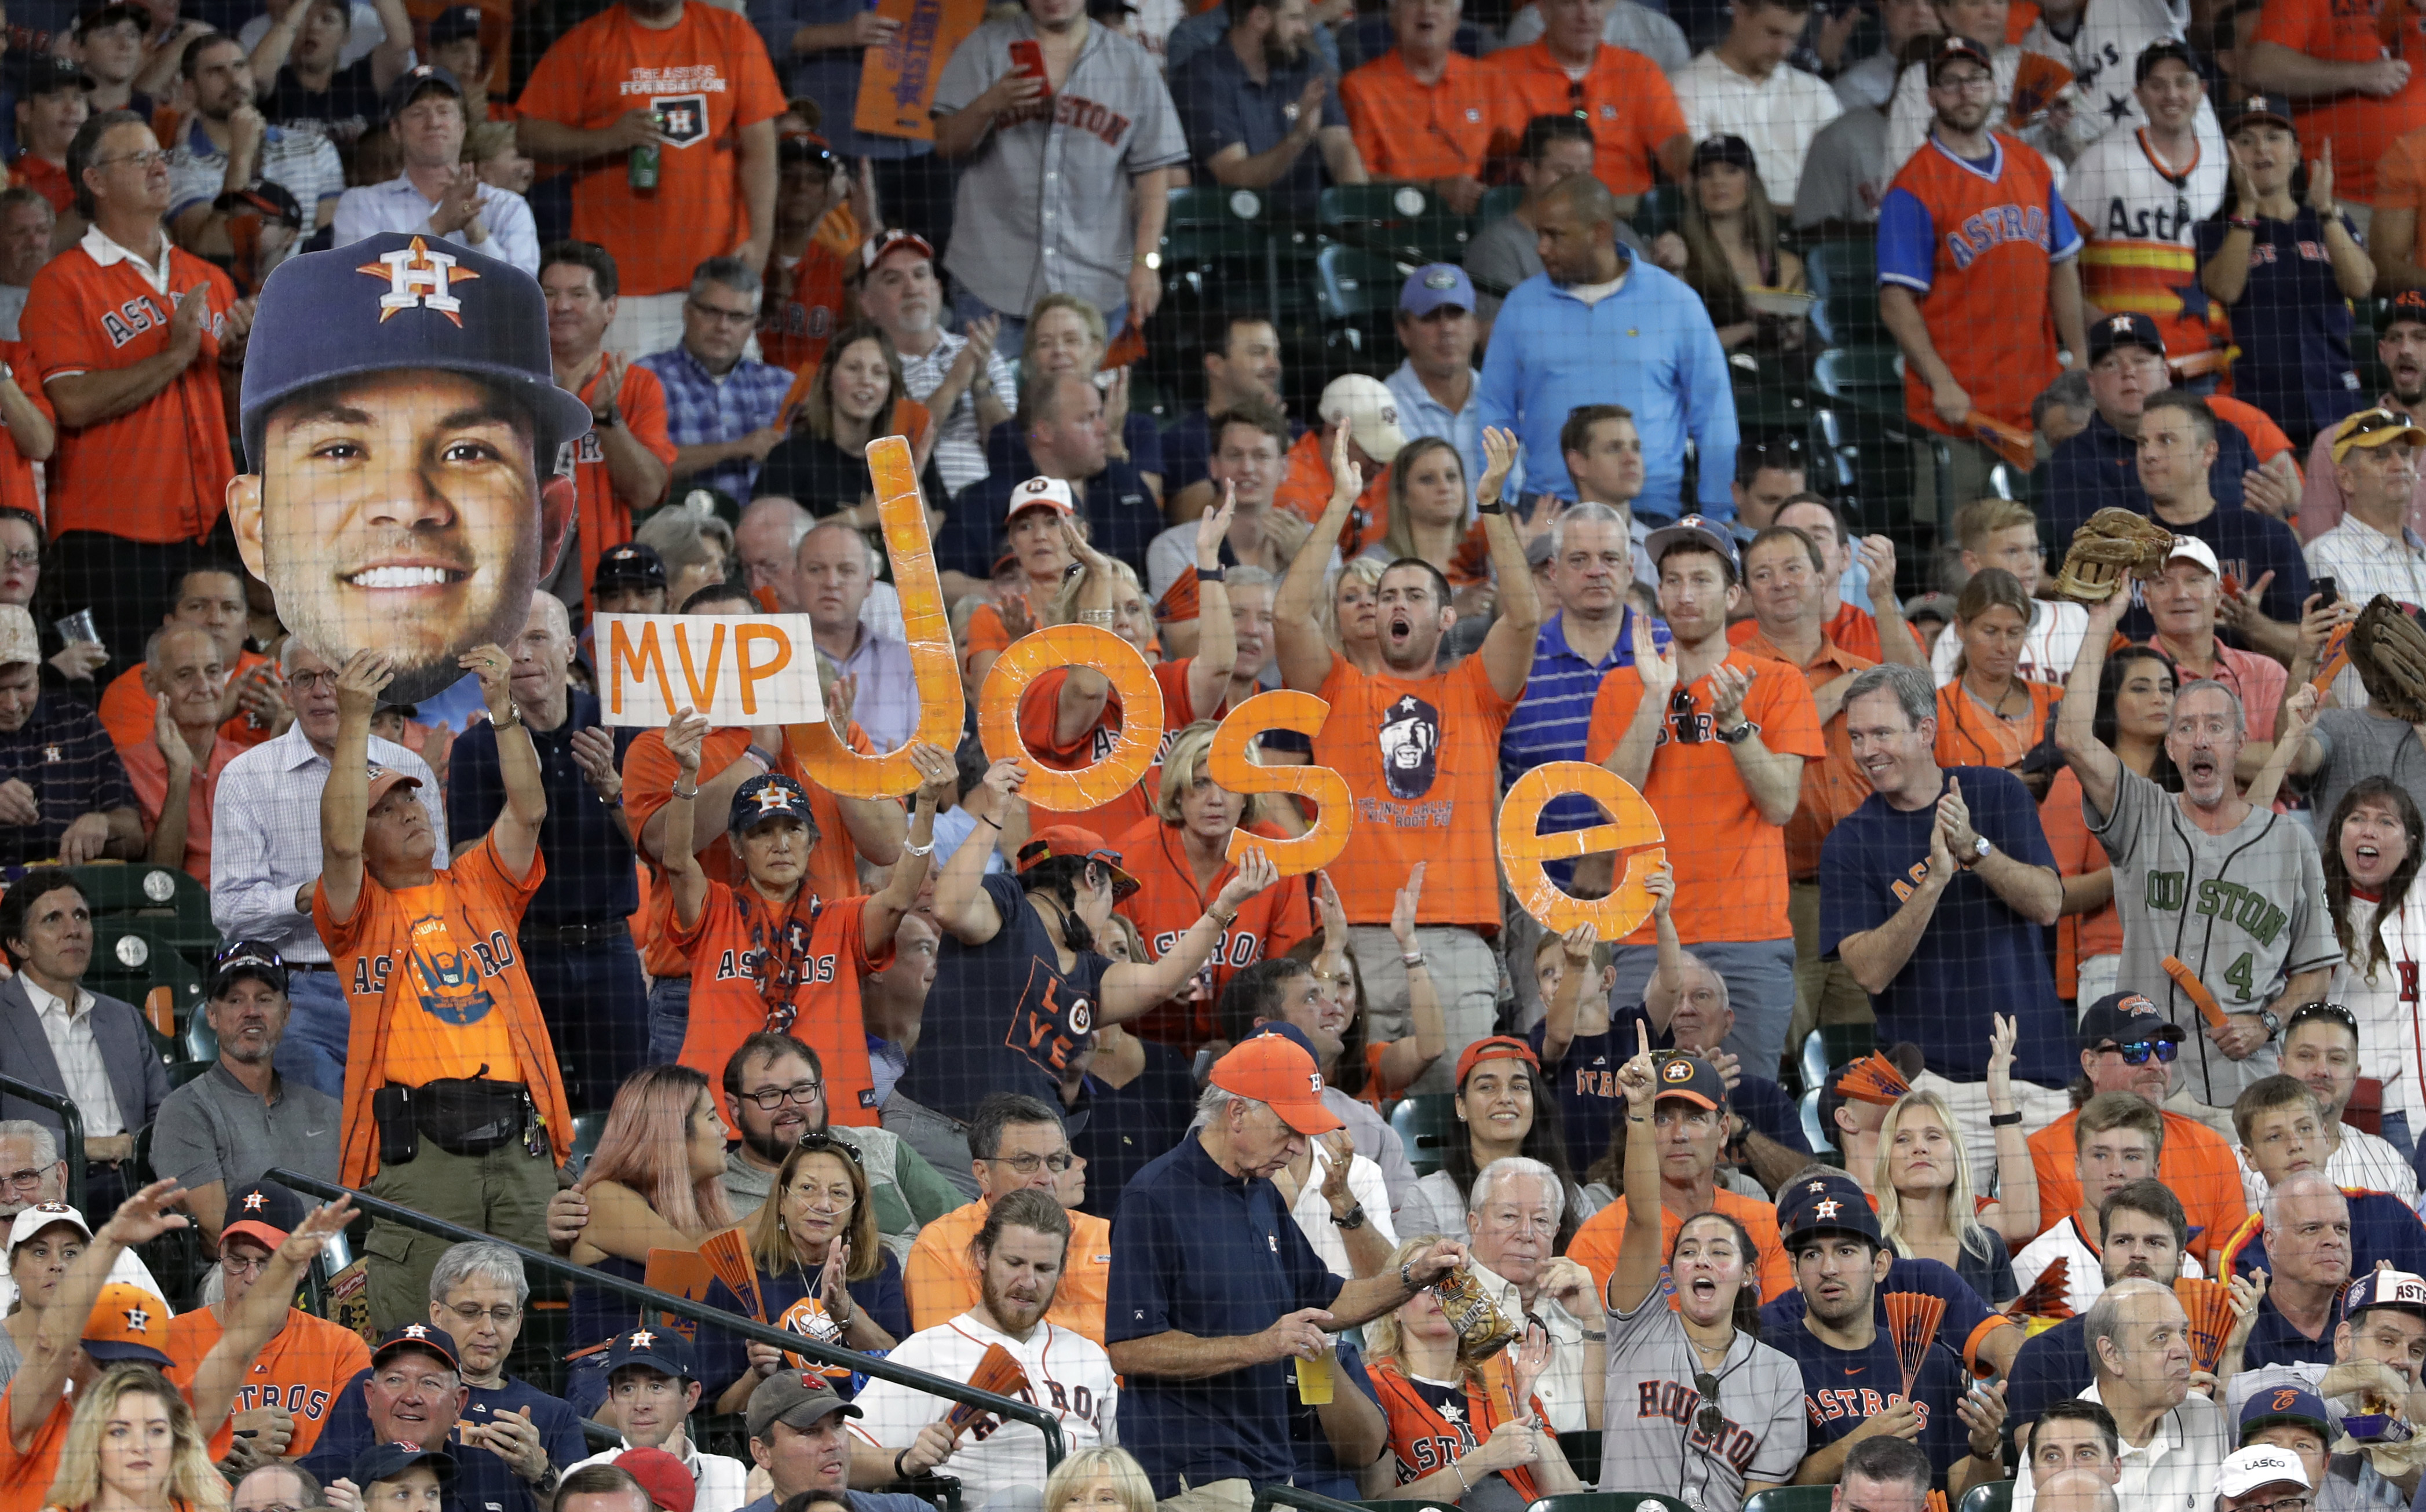 <div class='meta'><div class='origin-logo' data-origin='AP'></div><span class='caption-text' data-credit='David J. Phillip'>Fans cheer for Houston Astros second baseman Jose Altuve (27) during the first inning in Game 2.</span></div>